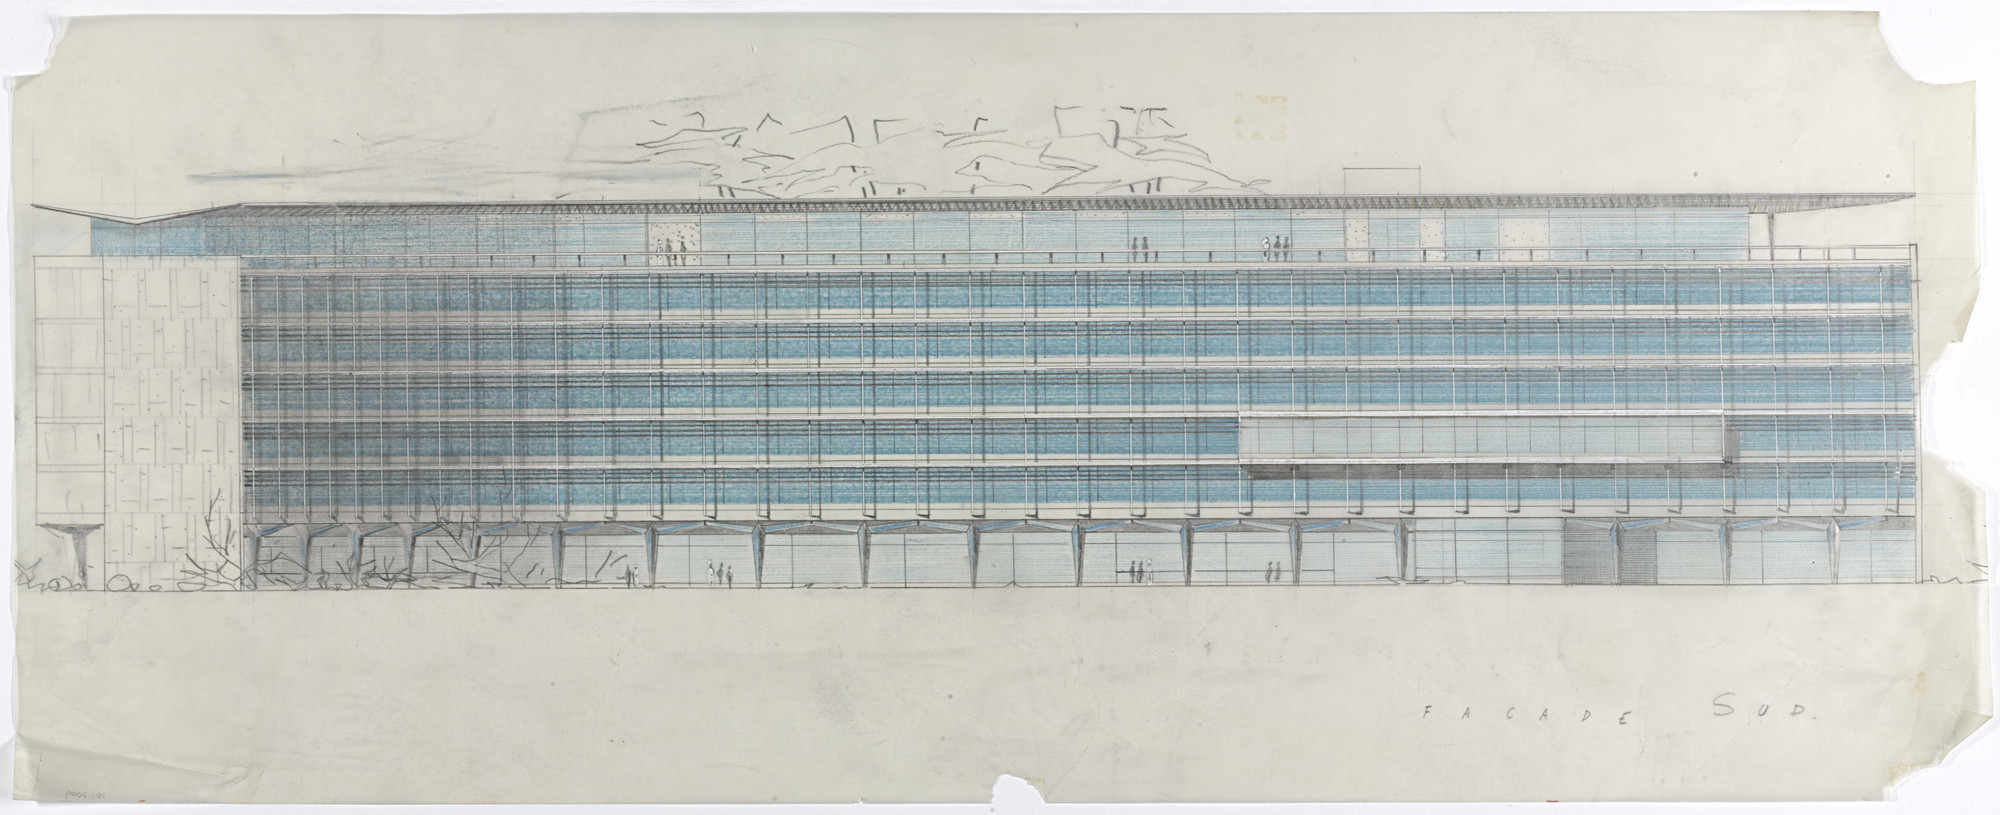 Jean Tschumi. Nestle Headquarters, Vevey, Switzerland, South facade, perspective. 1956-1957